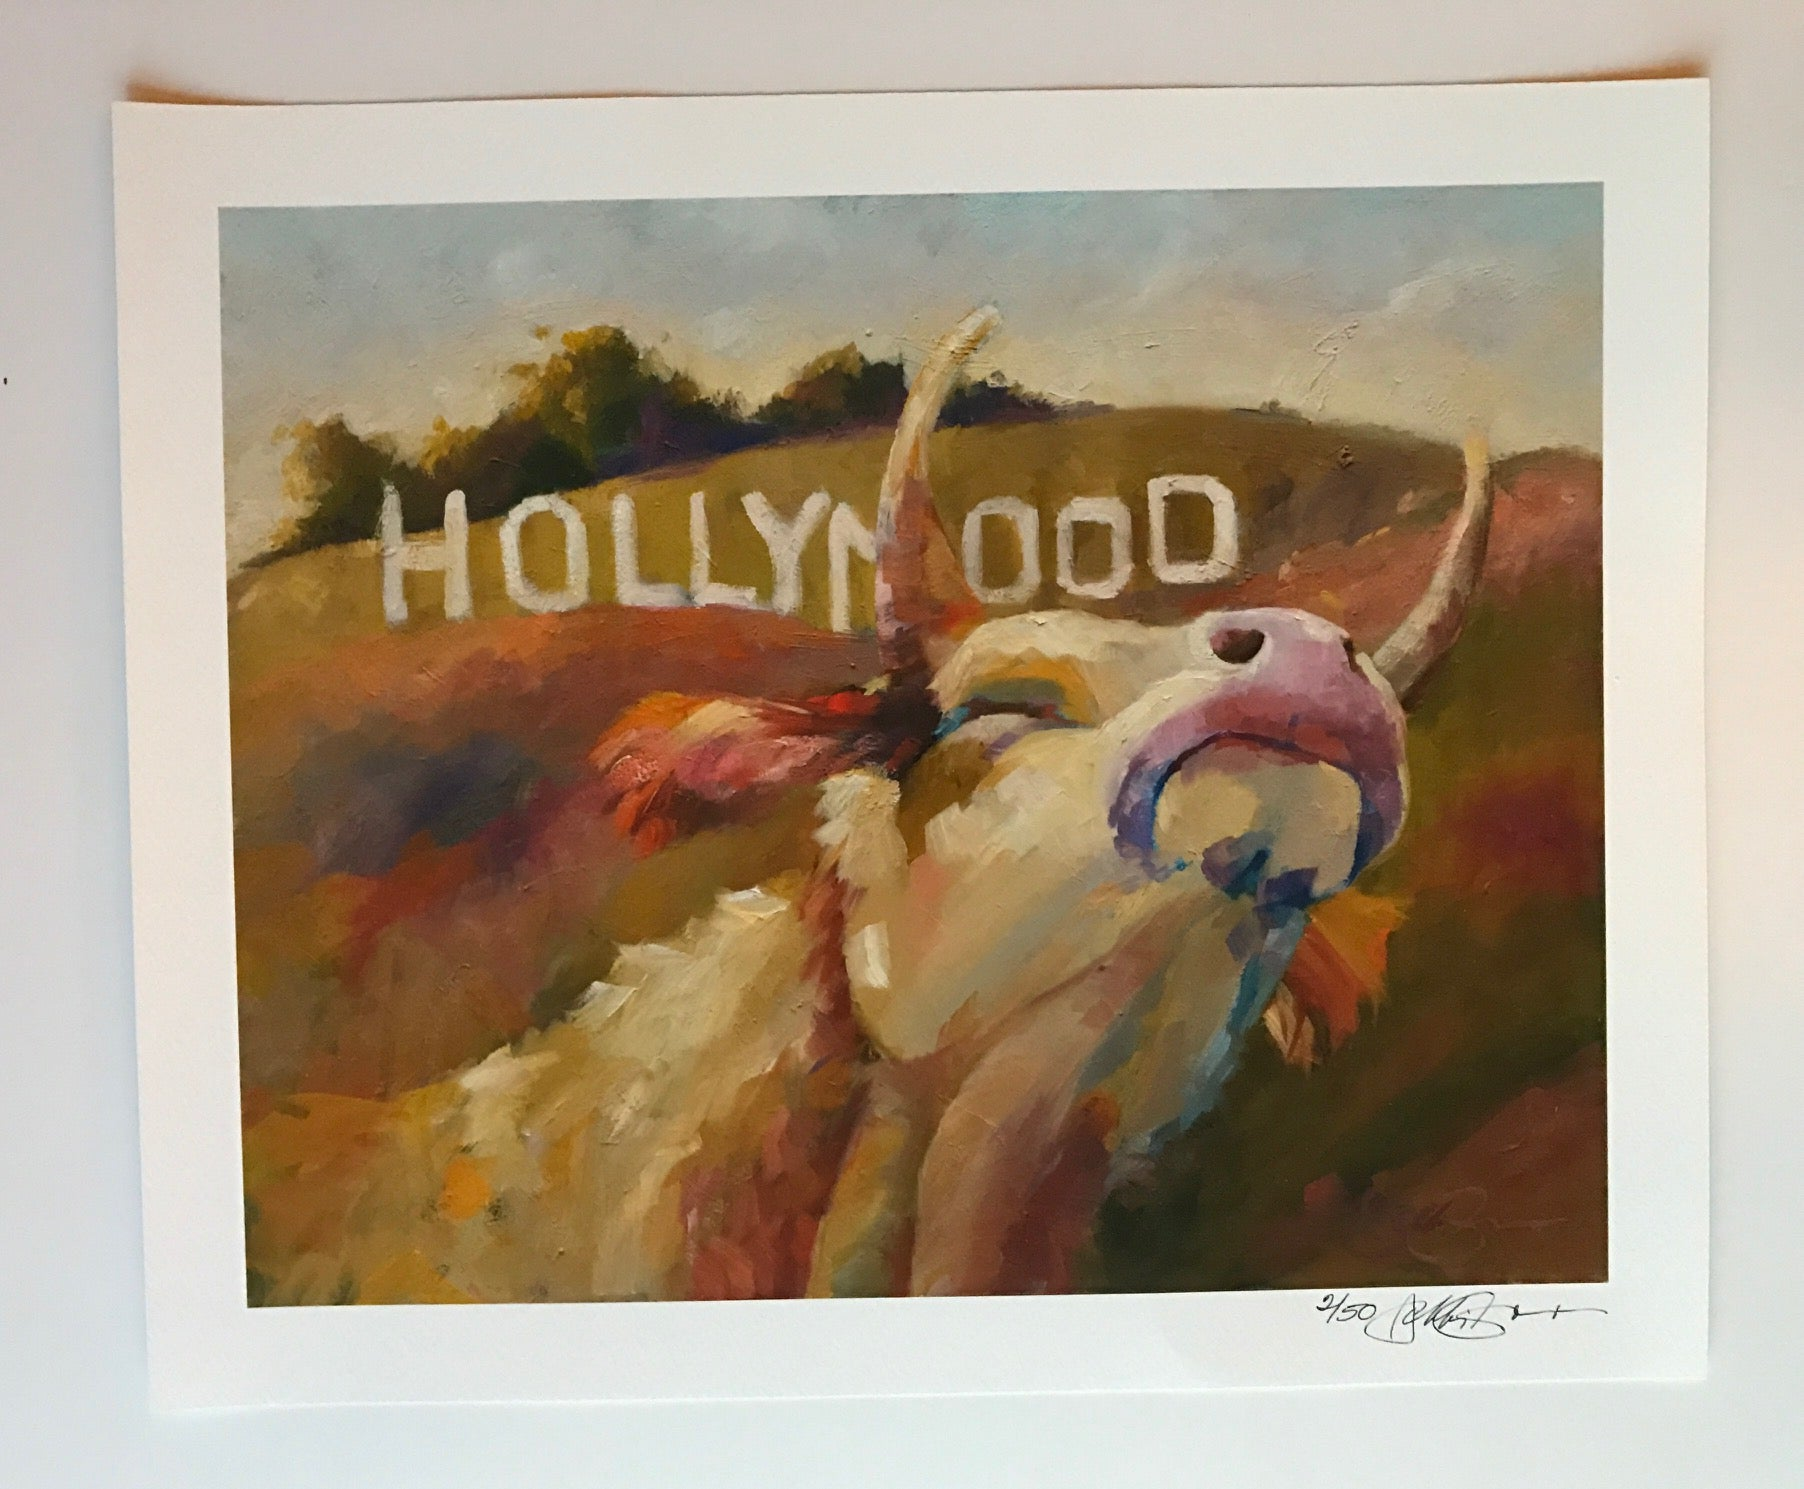 """Hollymood"", 11 x 14 inches"